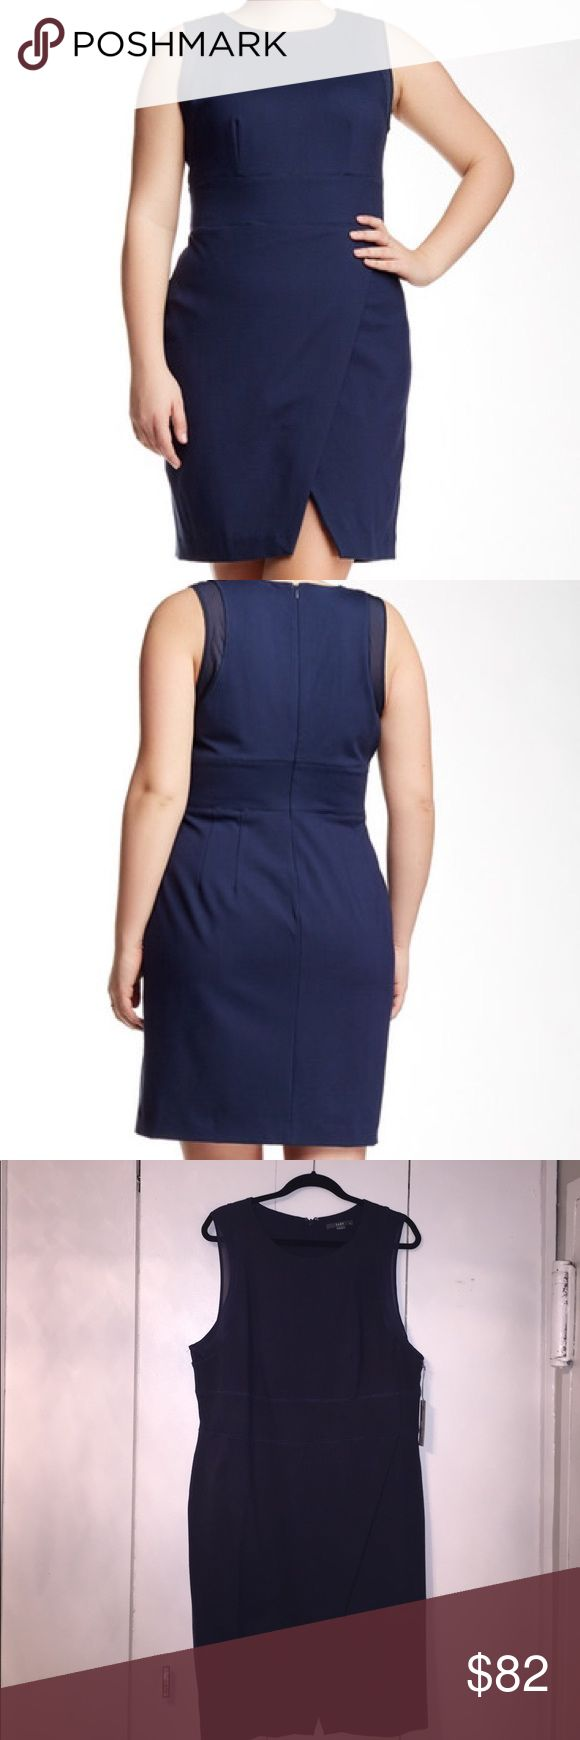 Tart navy blue jersey knit dress Tart Collections Navy blue jersey knit sleeveless dress. NWT. Never been worn. Brand new. Perfect condition. Great summer dress with nude shoes and/or coral or turquoise jewelry to brighten it up for summer. Tart Dresses Midi